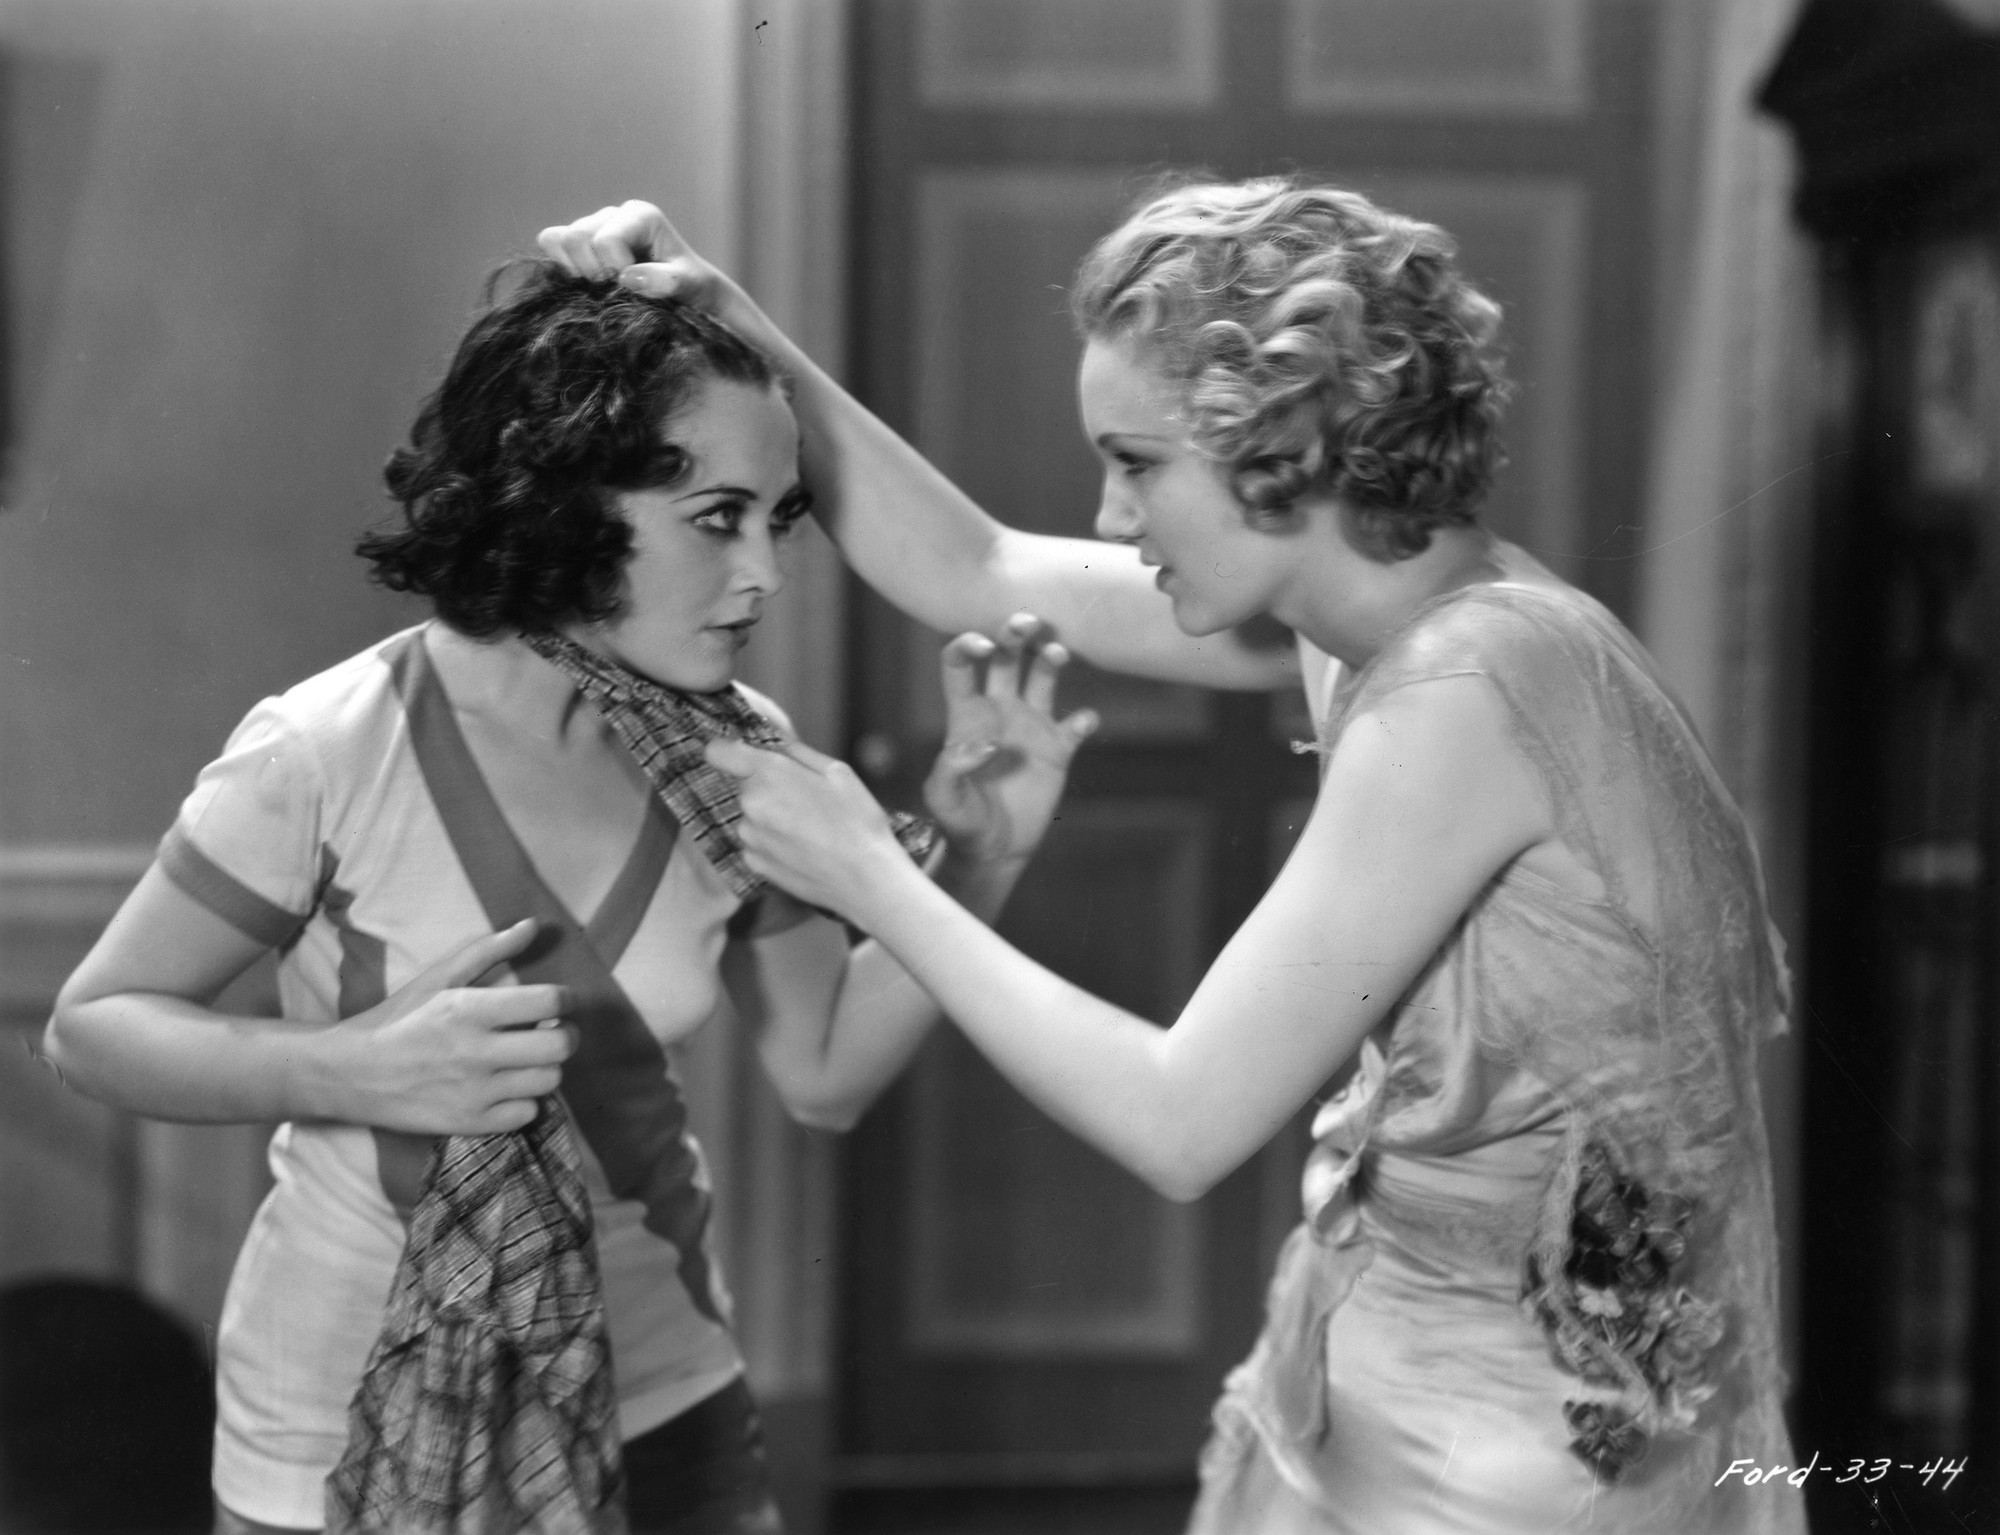 The Brat. 1931. USA. Directed by John Ford. Courtesy Twentieth Century Fox